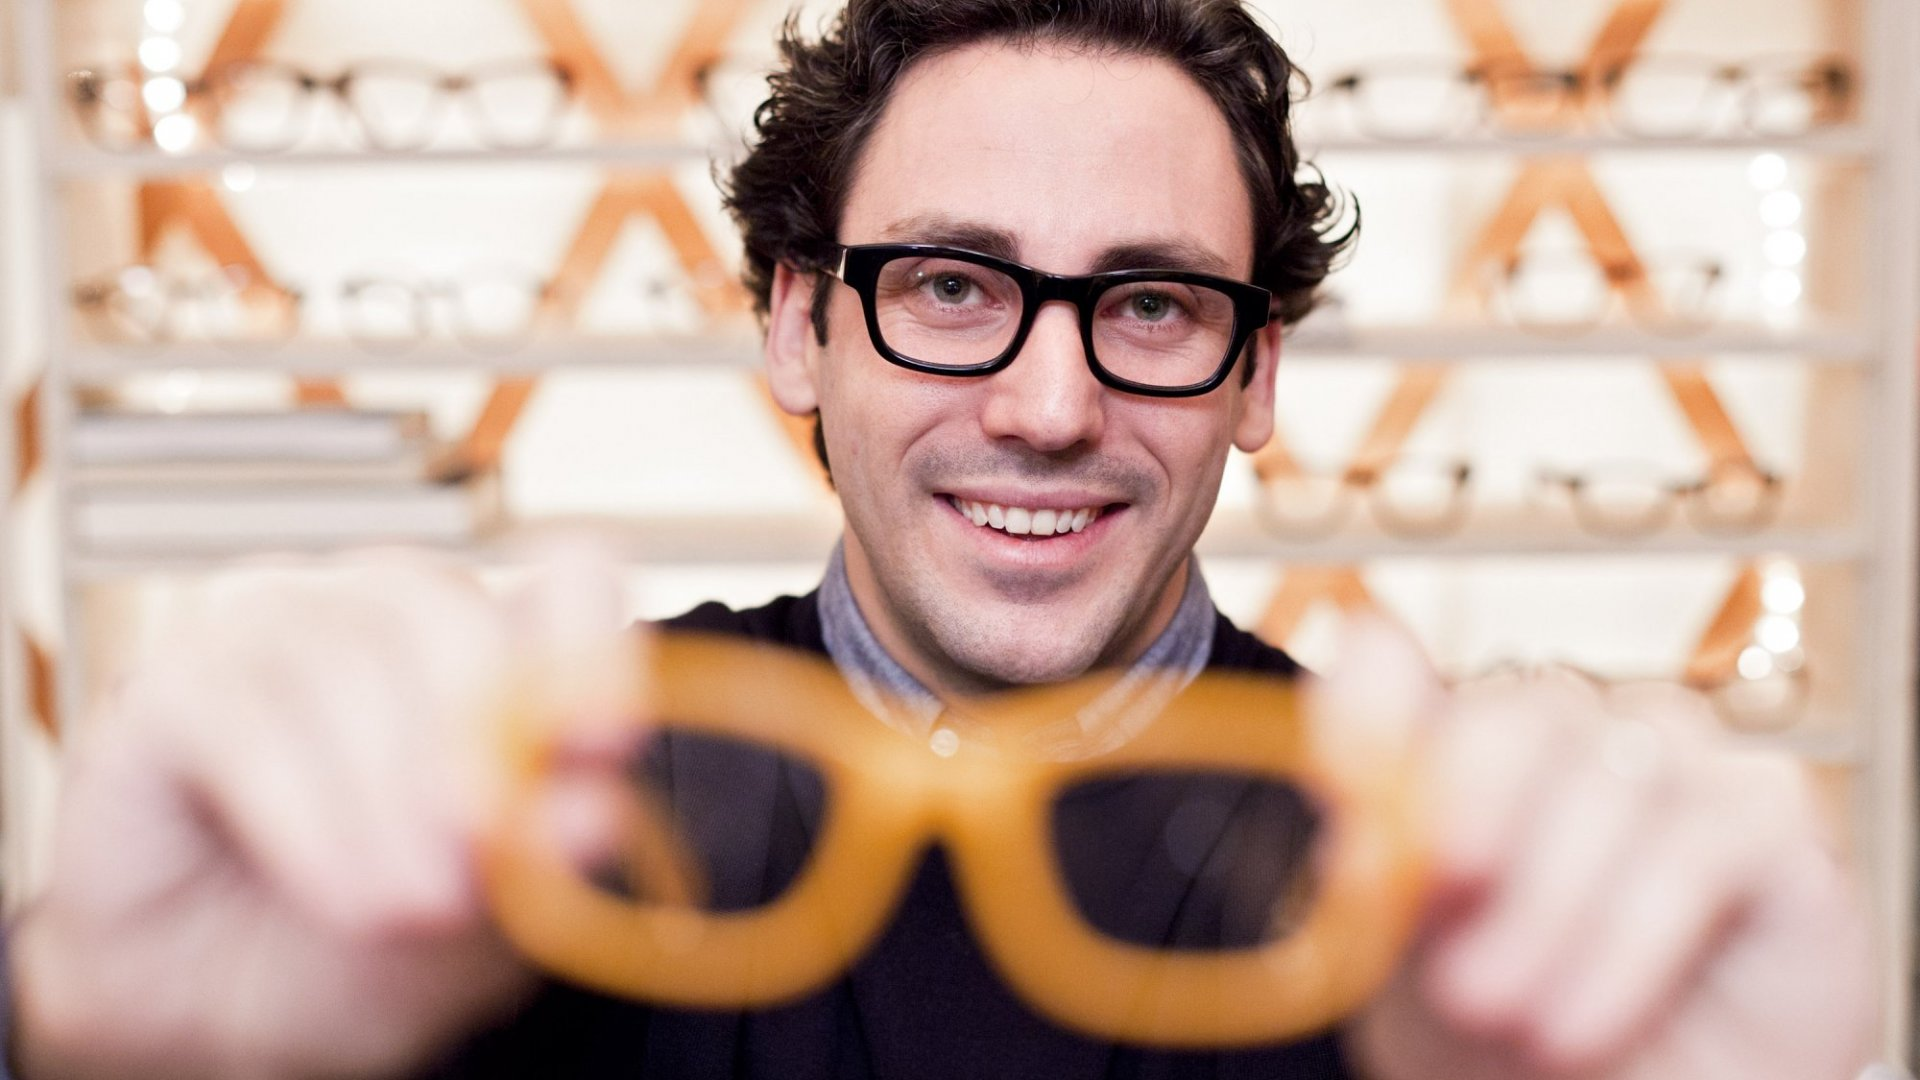 How Warby Parker Found More Productivity Without Increasing Overhead